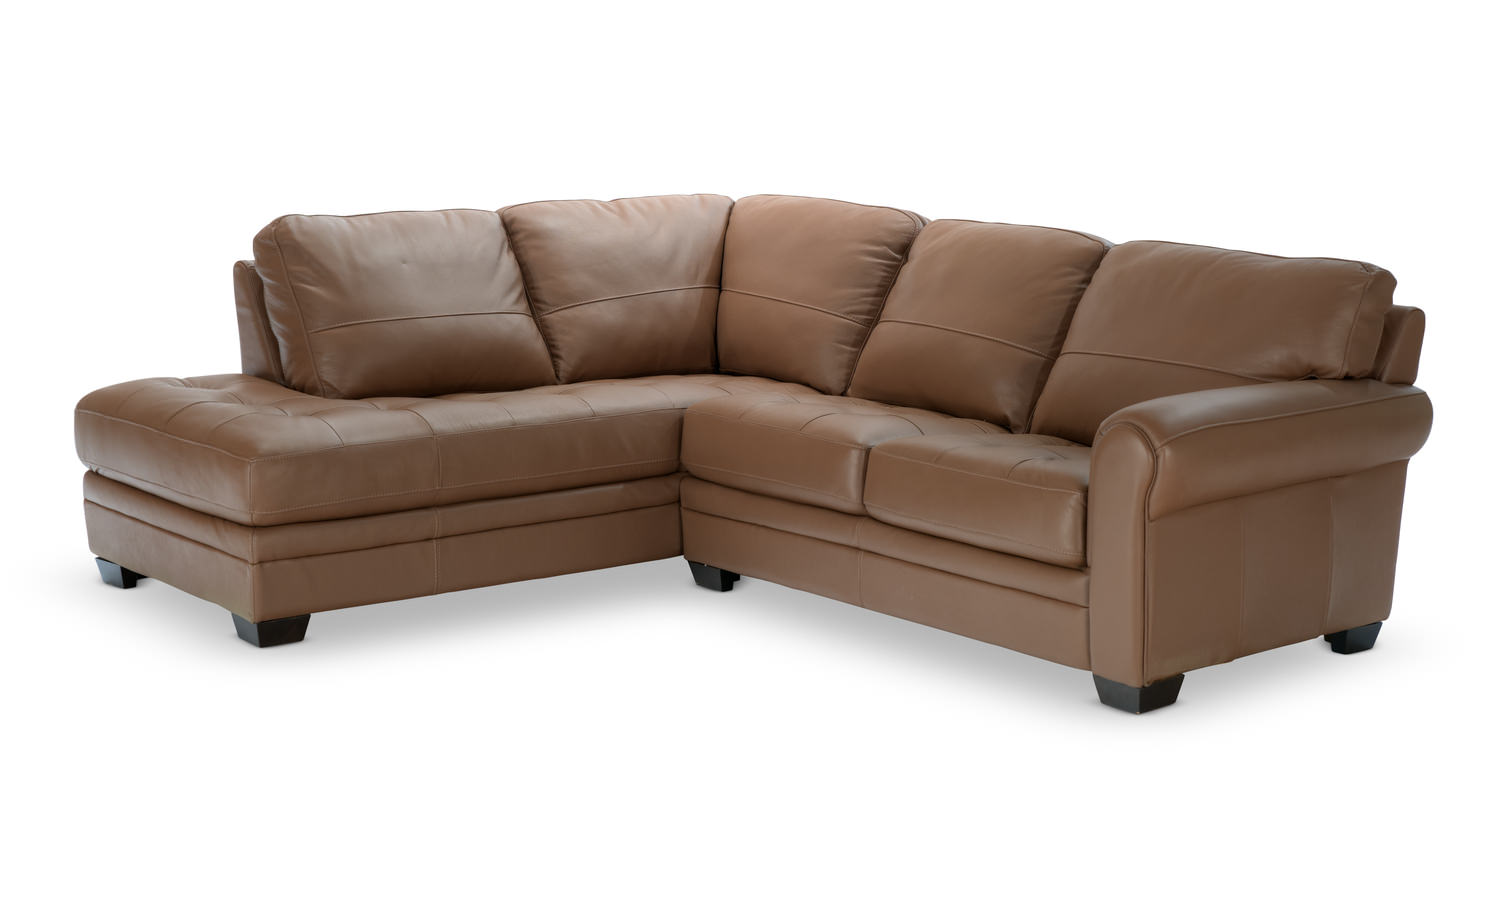 norman piece leather modular sectional  hom furniture  - norman piece modular sectional